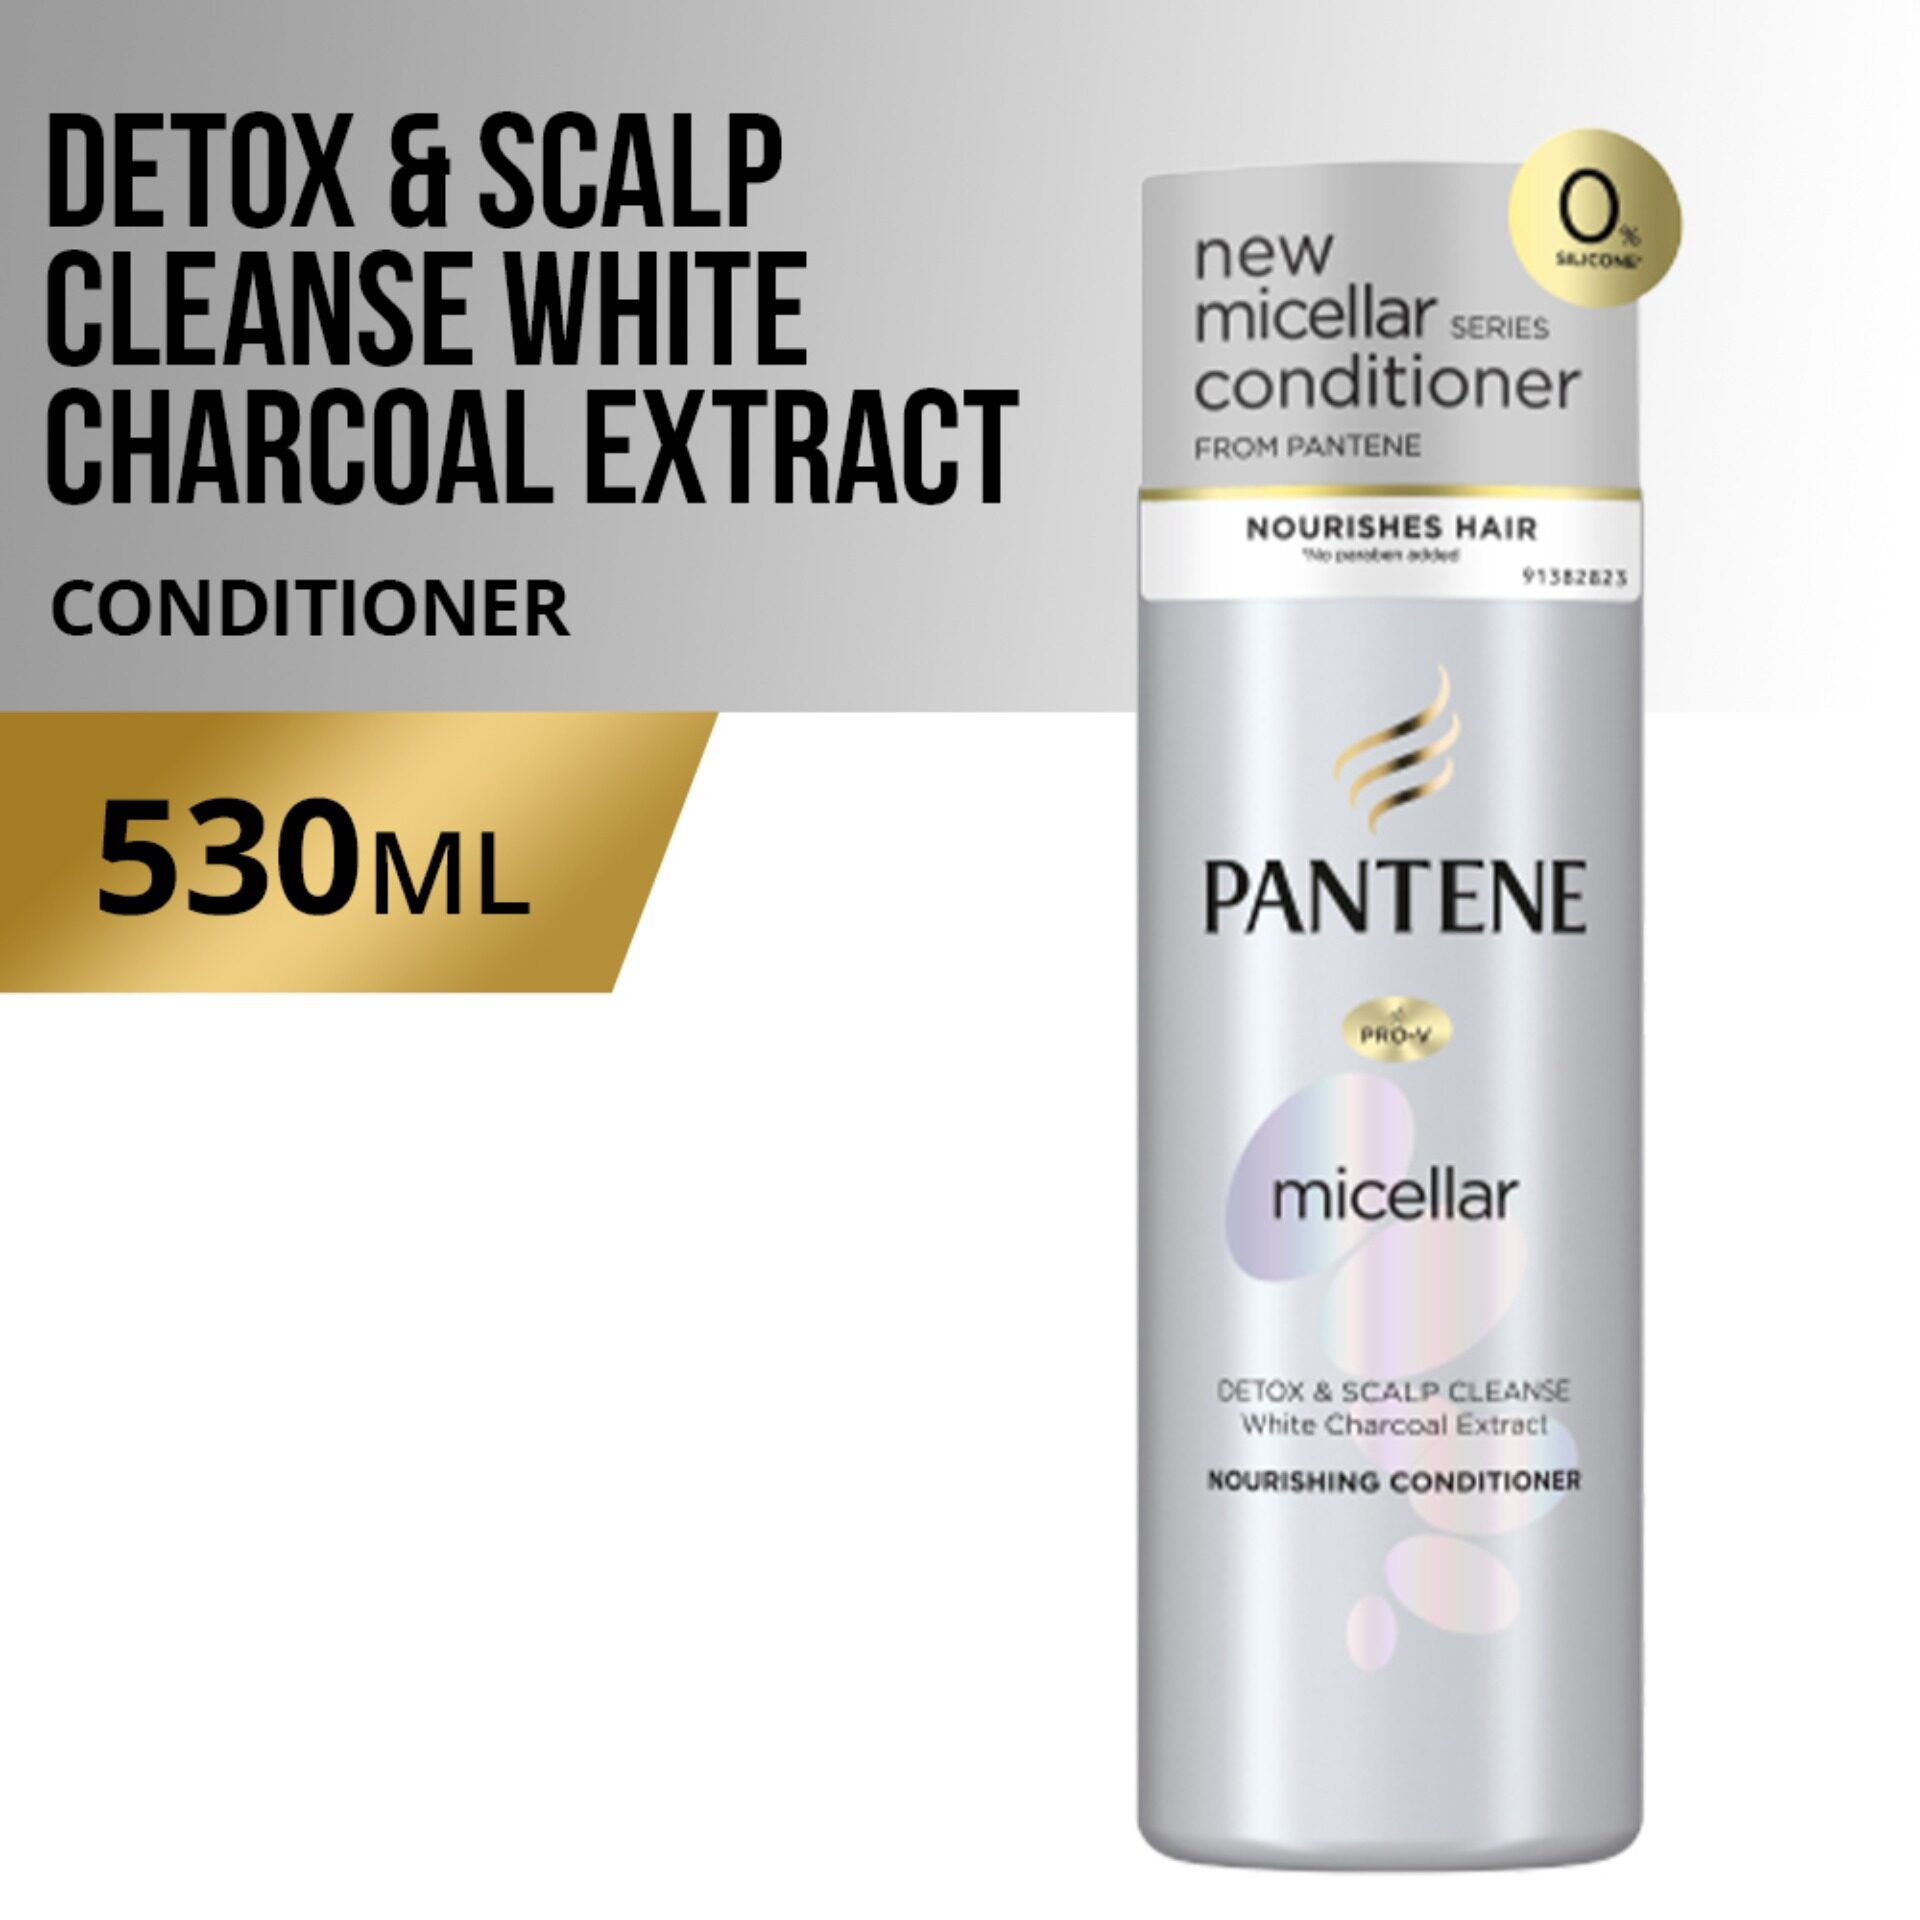 Pantene Micellar Detox & Scalp Cleanse White Charcoal Extract Conditioner 530ml